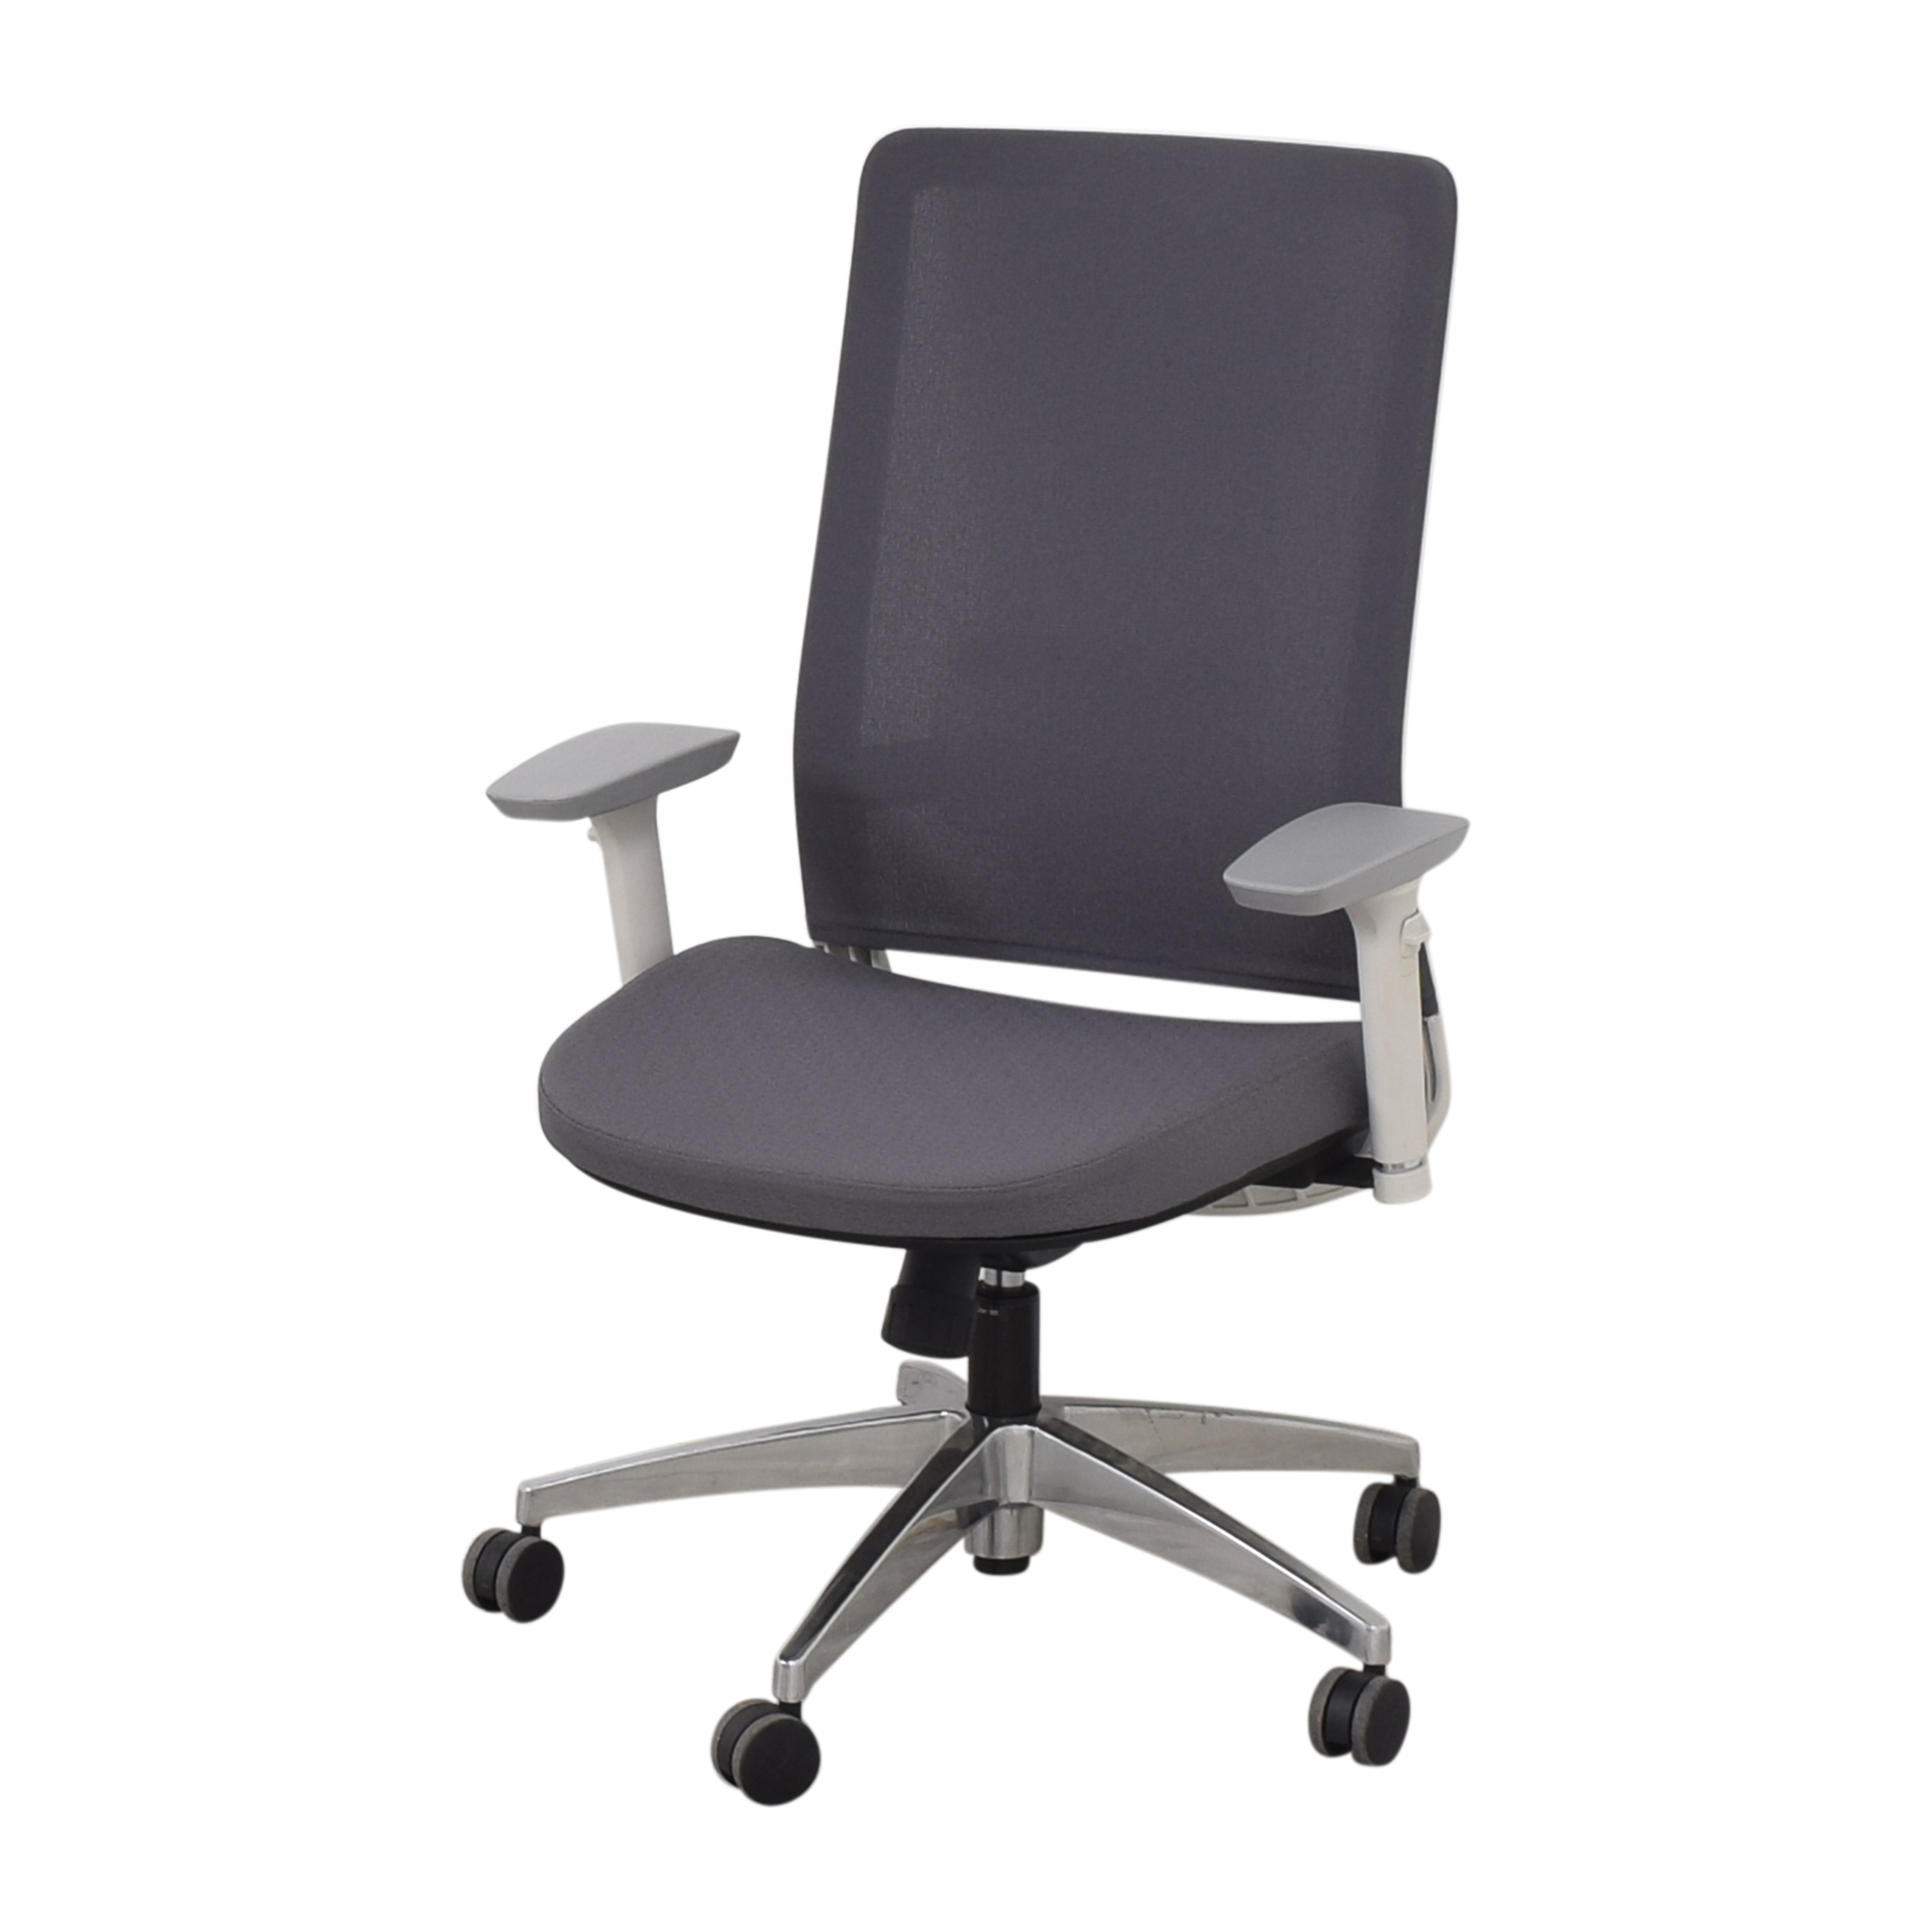 Global Furniture Group Factor High Back Office Chair / Chairs